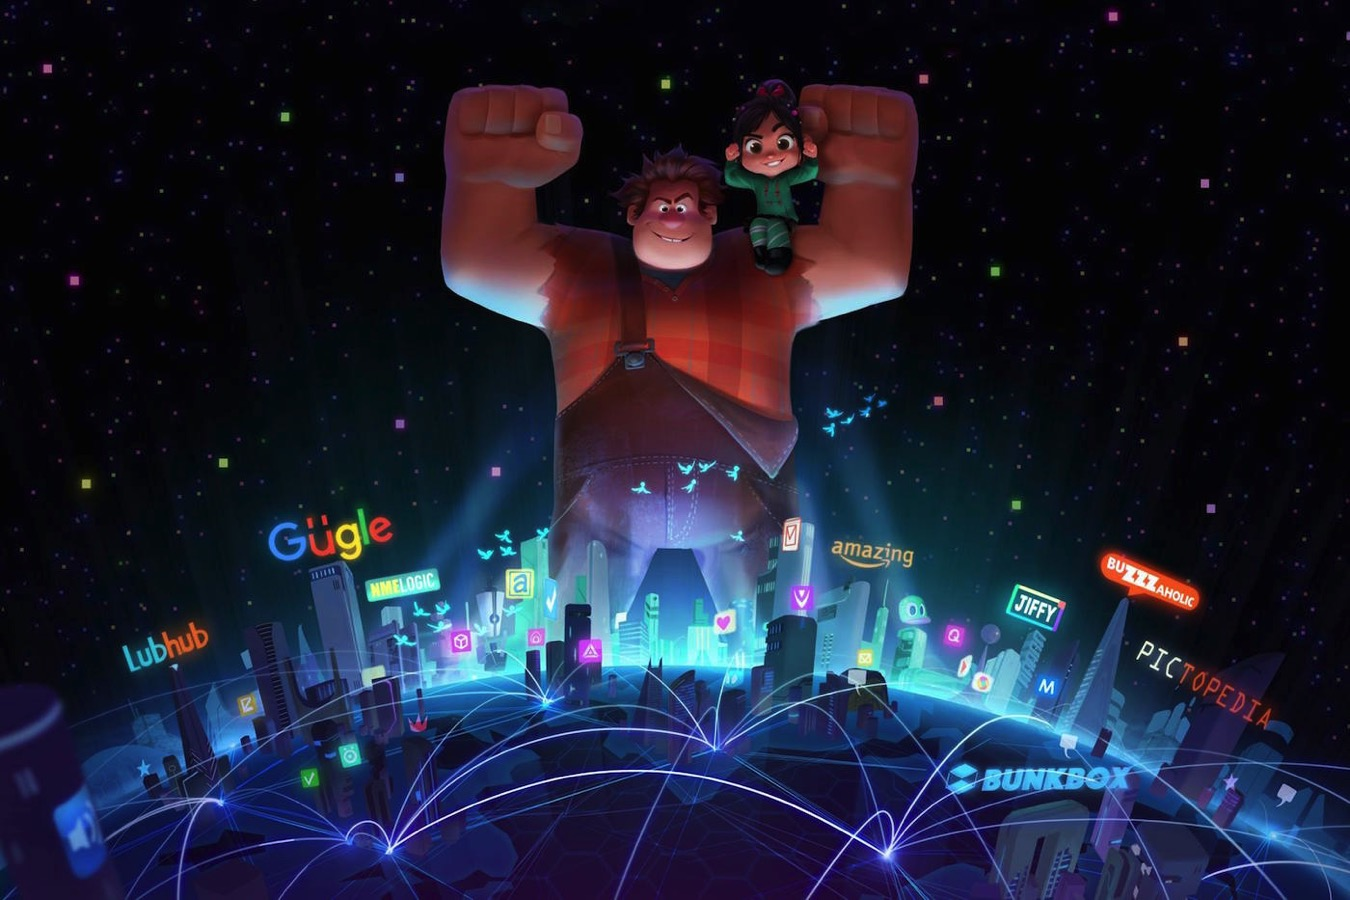 Wreck it ralph 2 image1 1